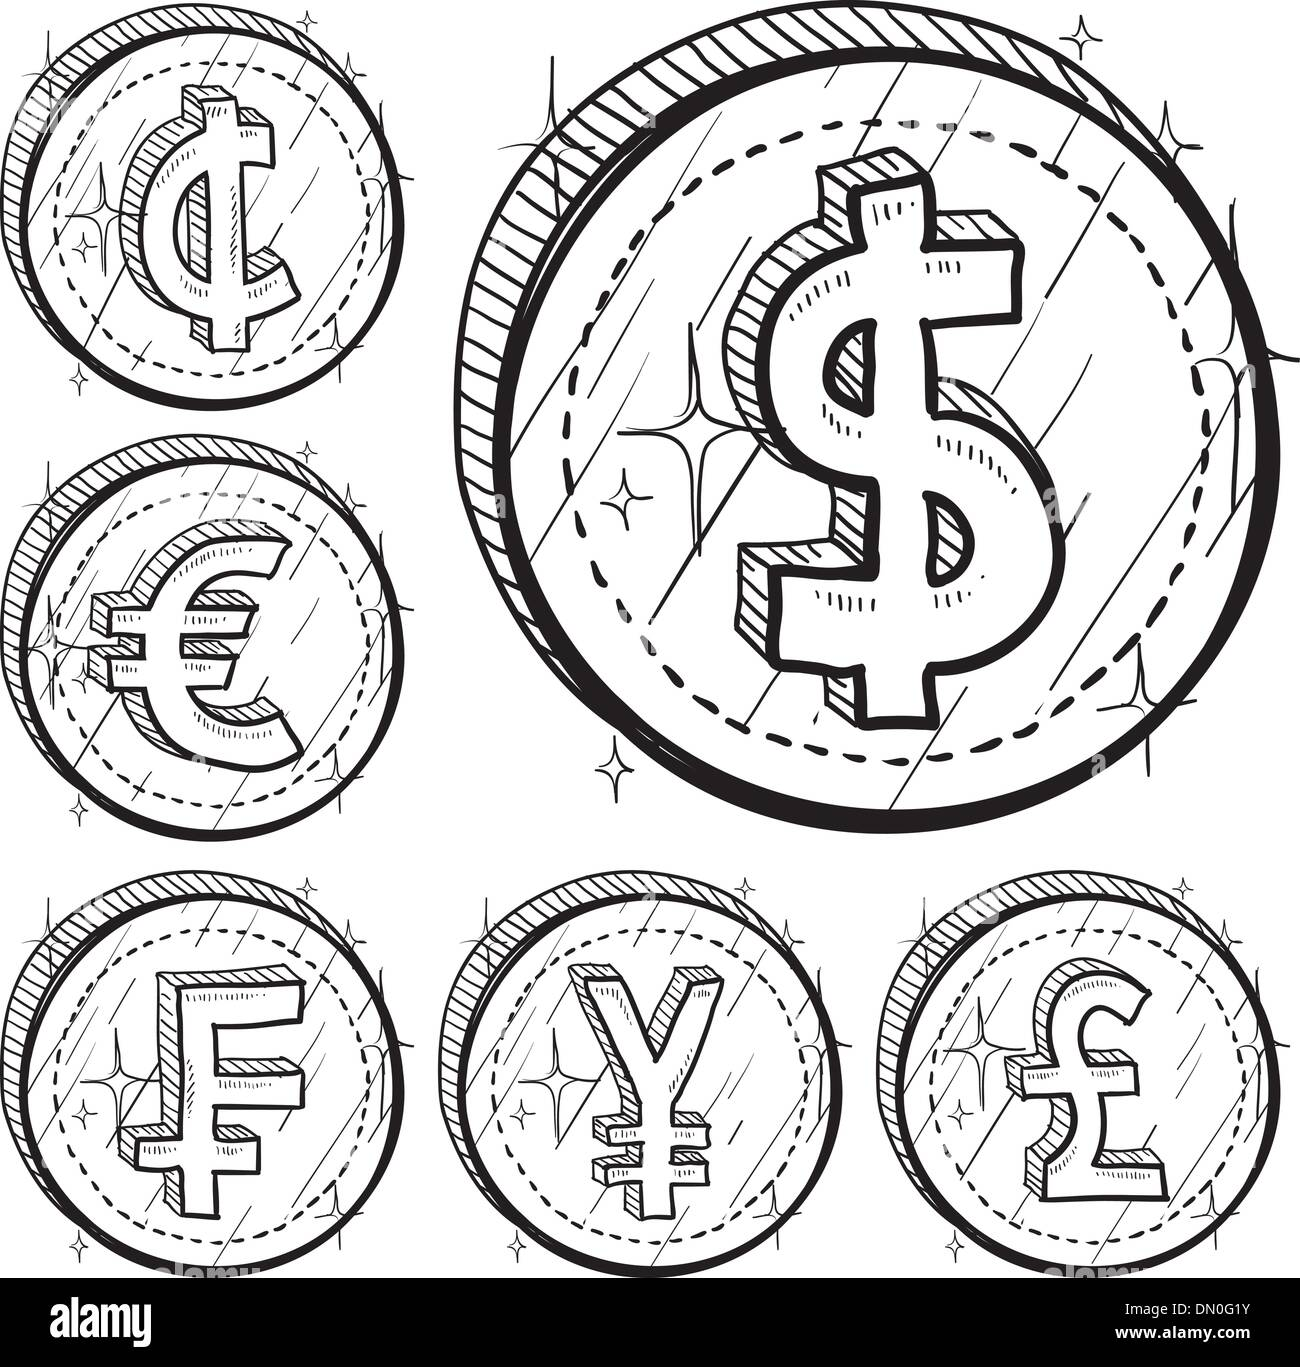 Cent Currency Value Sketch Stock Photos Cent Currency Value Sketch